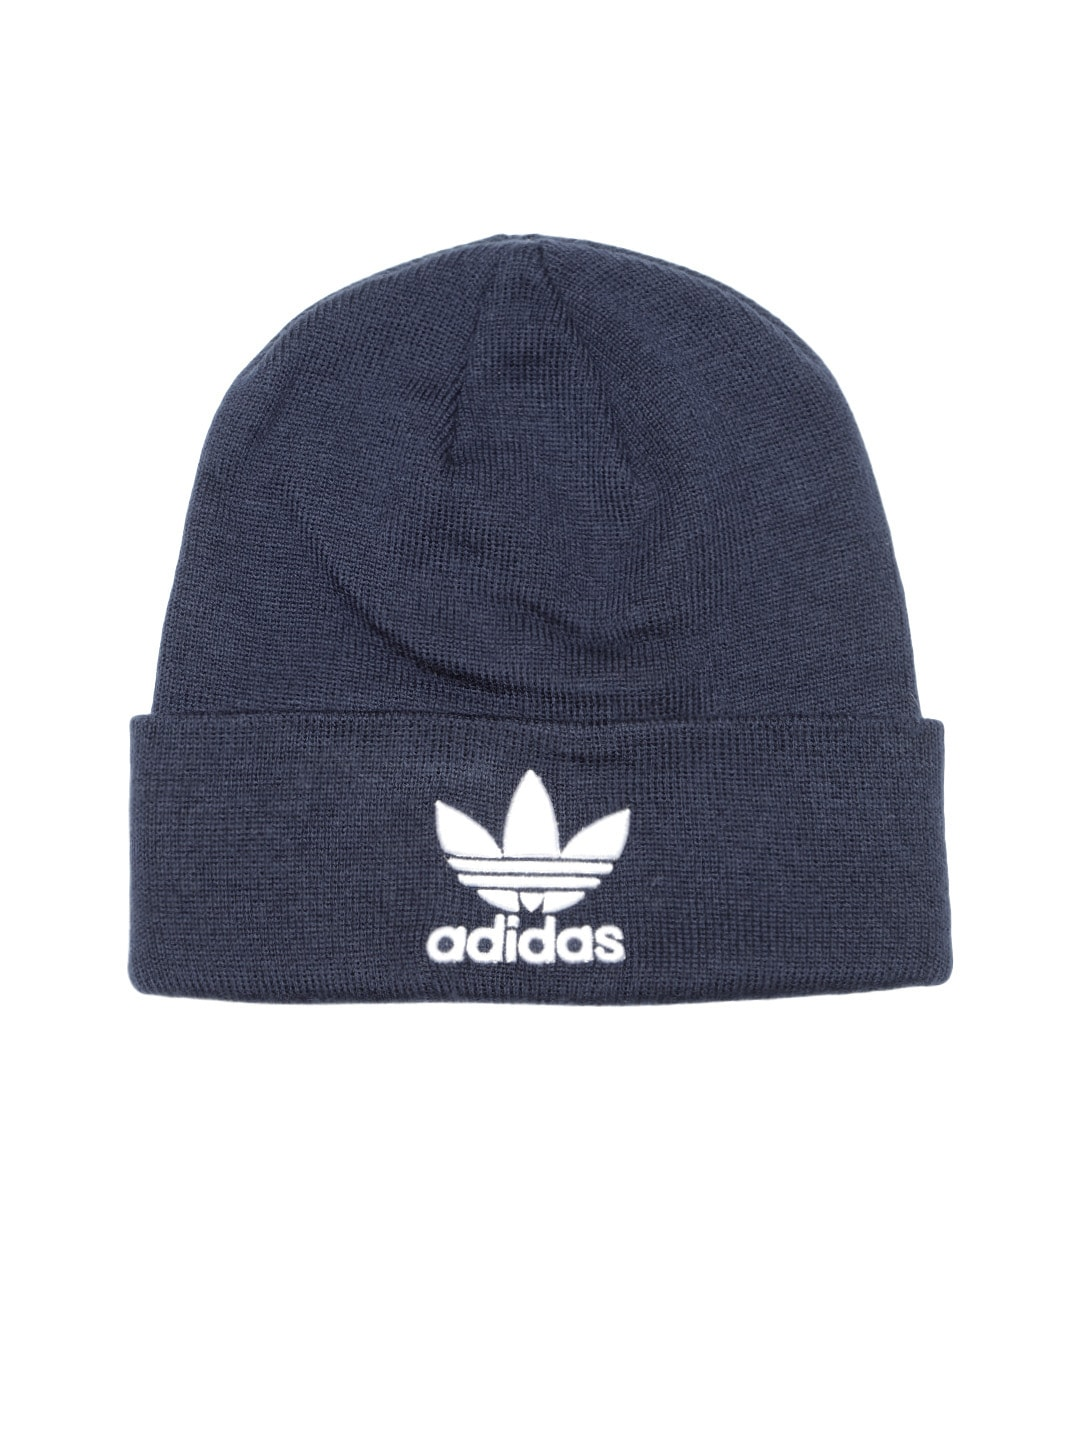 Adidas Originals Caps - Buy Adidas Originals Caps Online in India fb6ef573abb